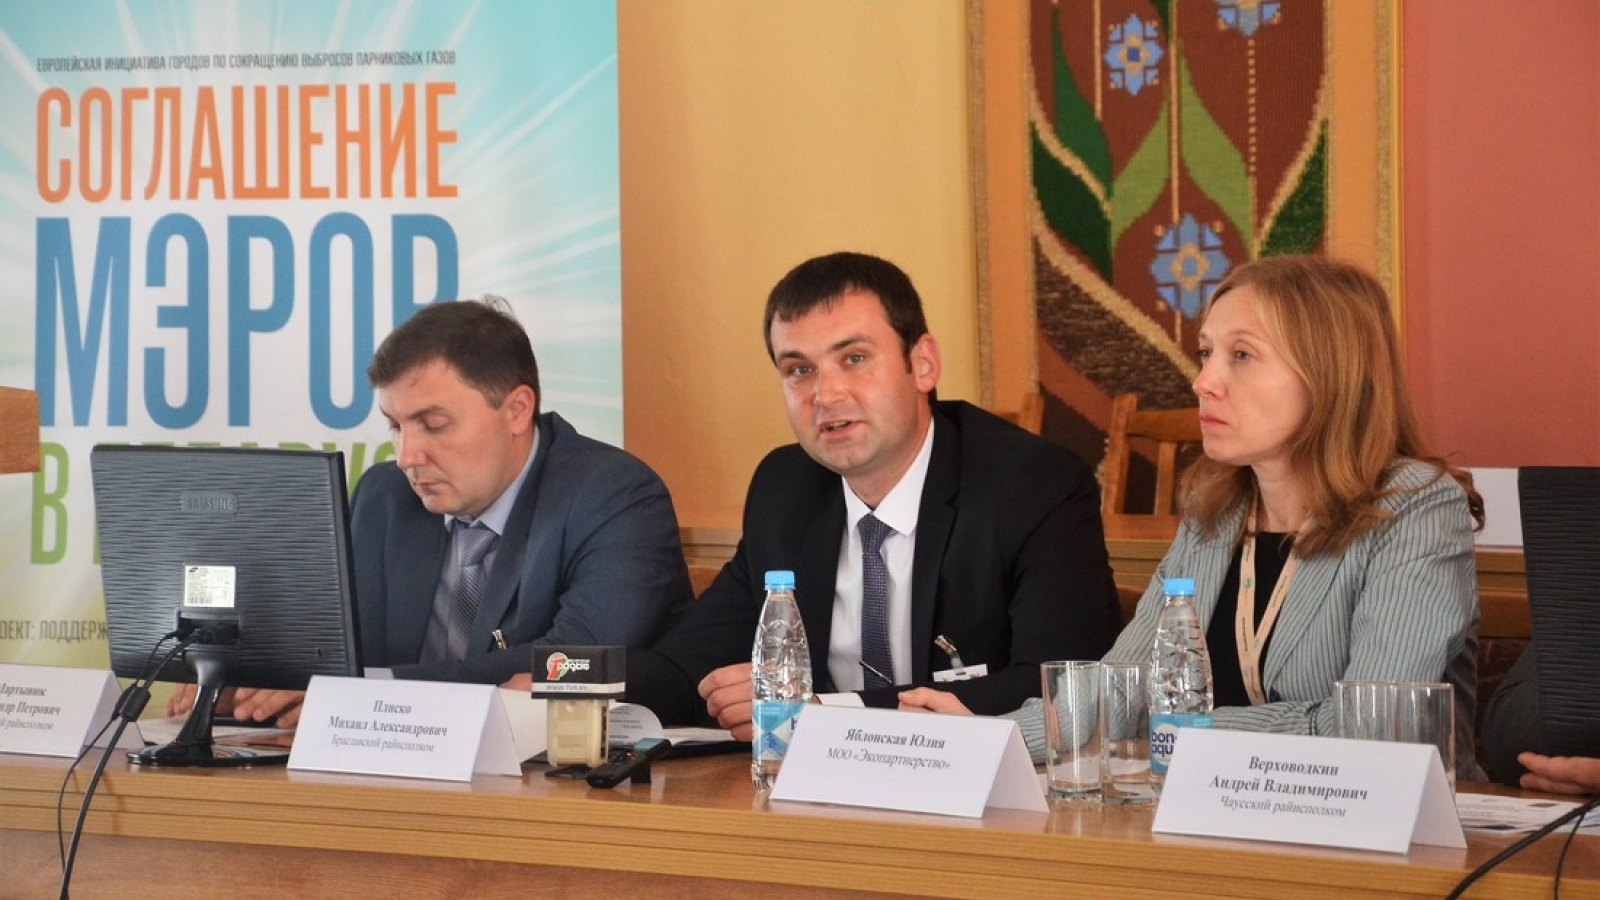 Belarusian Covenant of Mayors signatories meet to exchange experiences